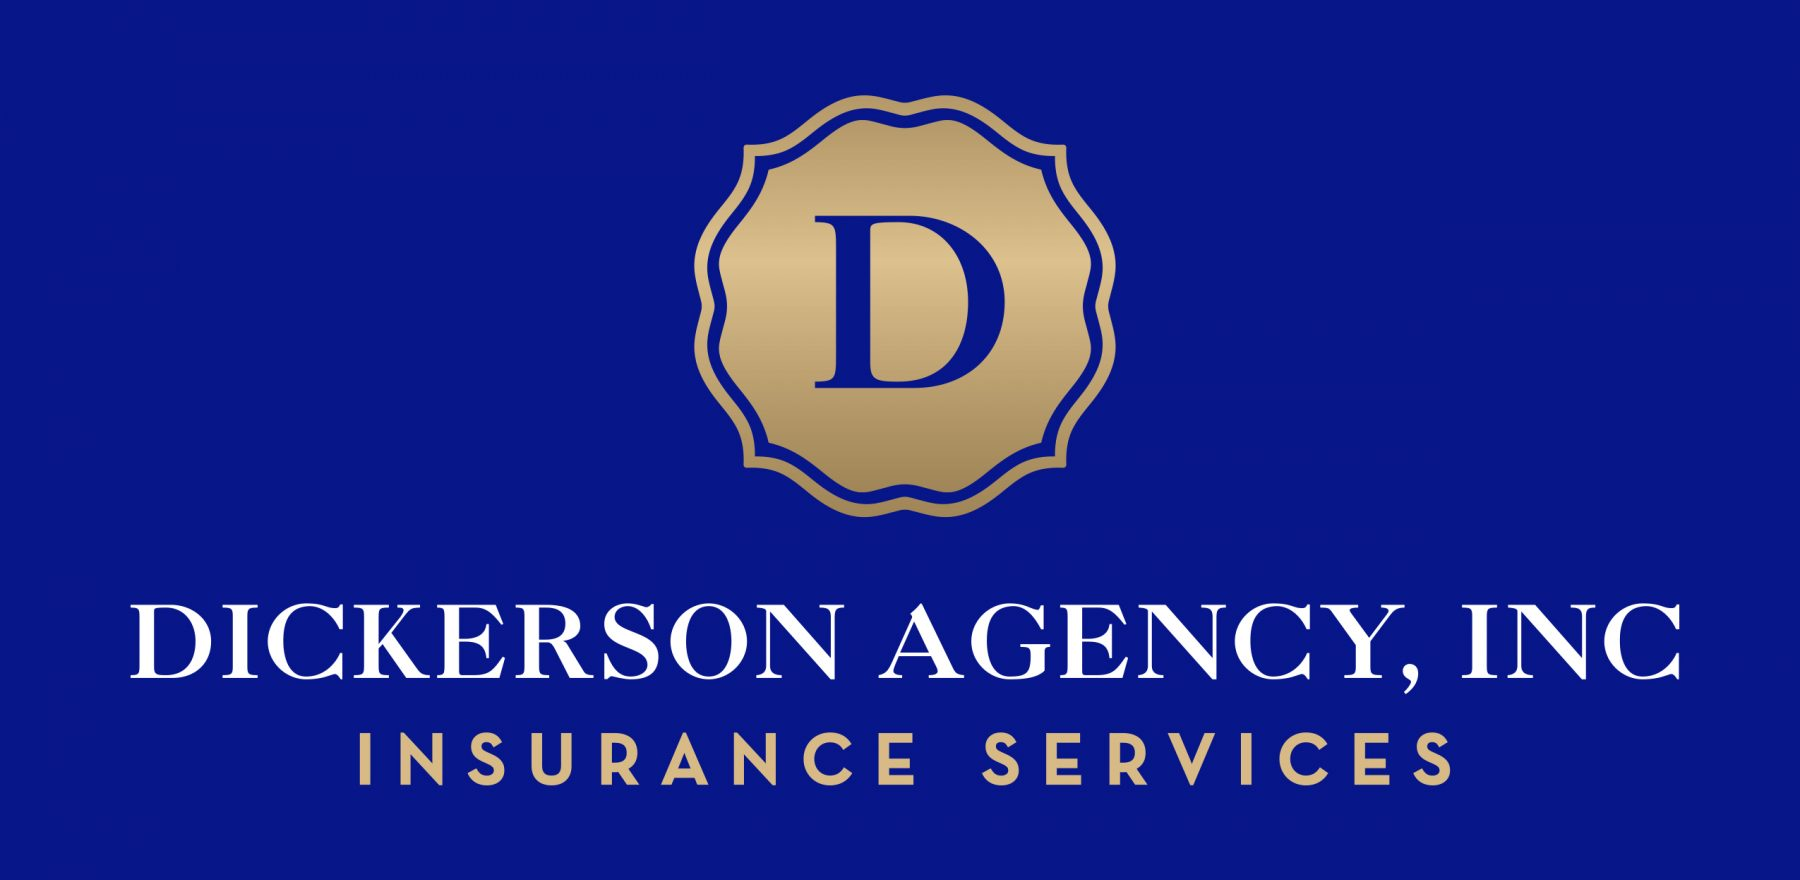 Insurance Carriers Kennesaw Ga 770 424 6762 Dickerson Agency